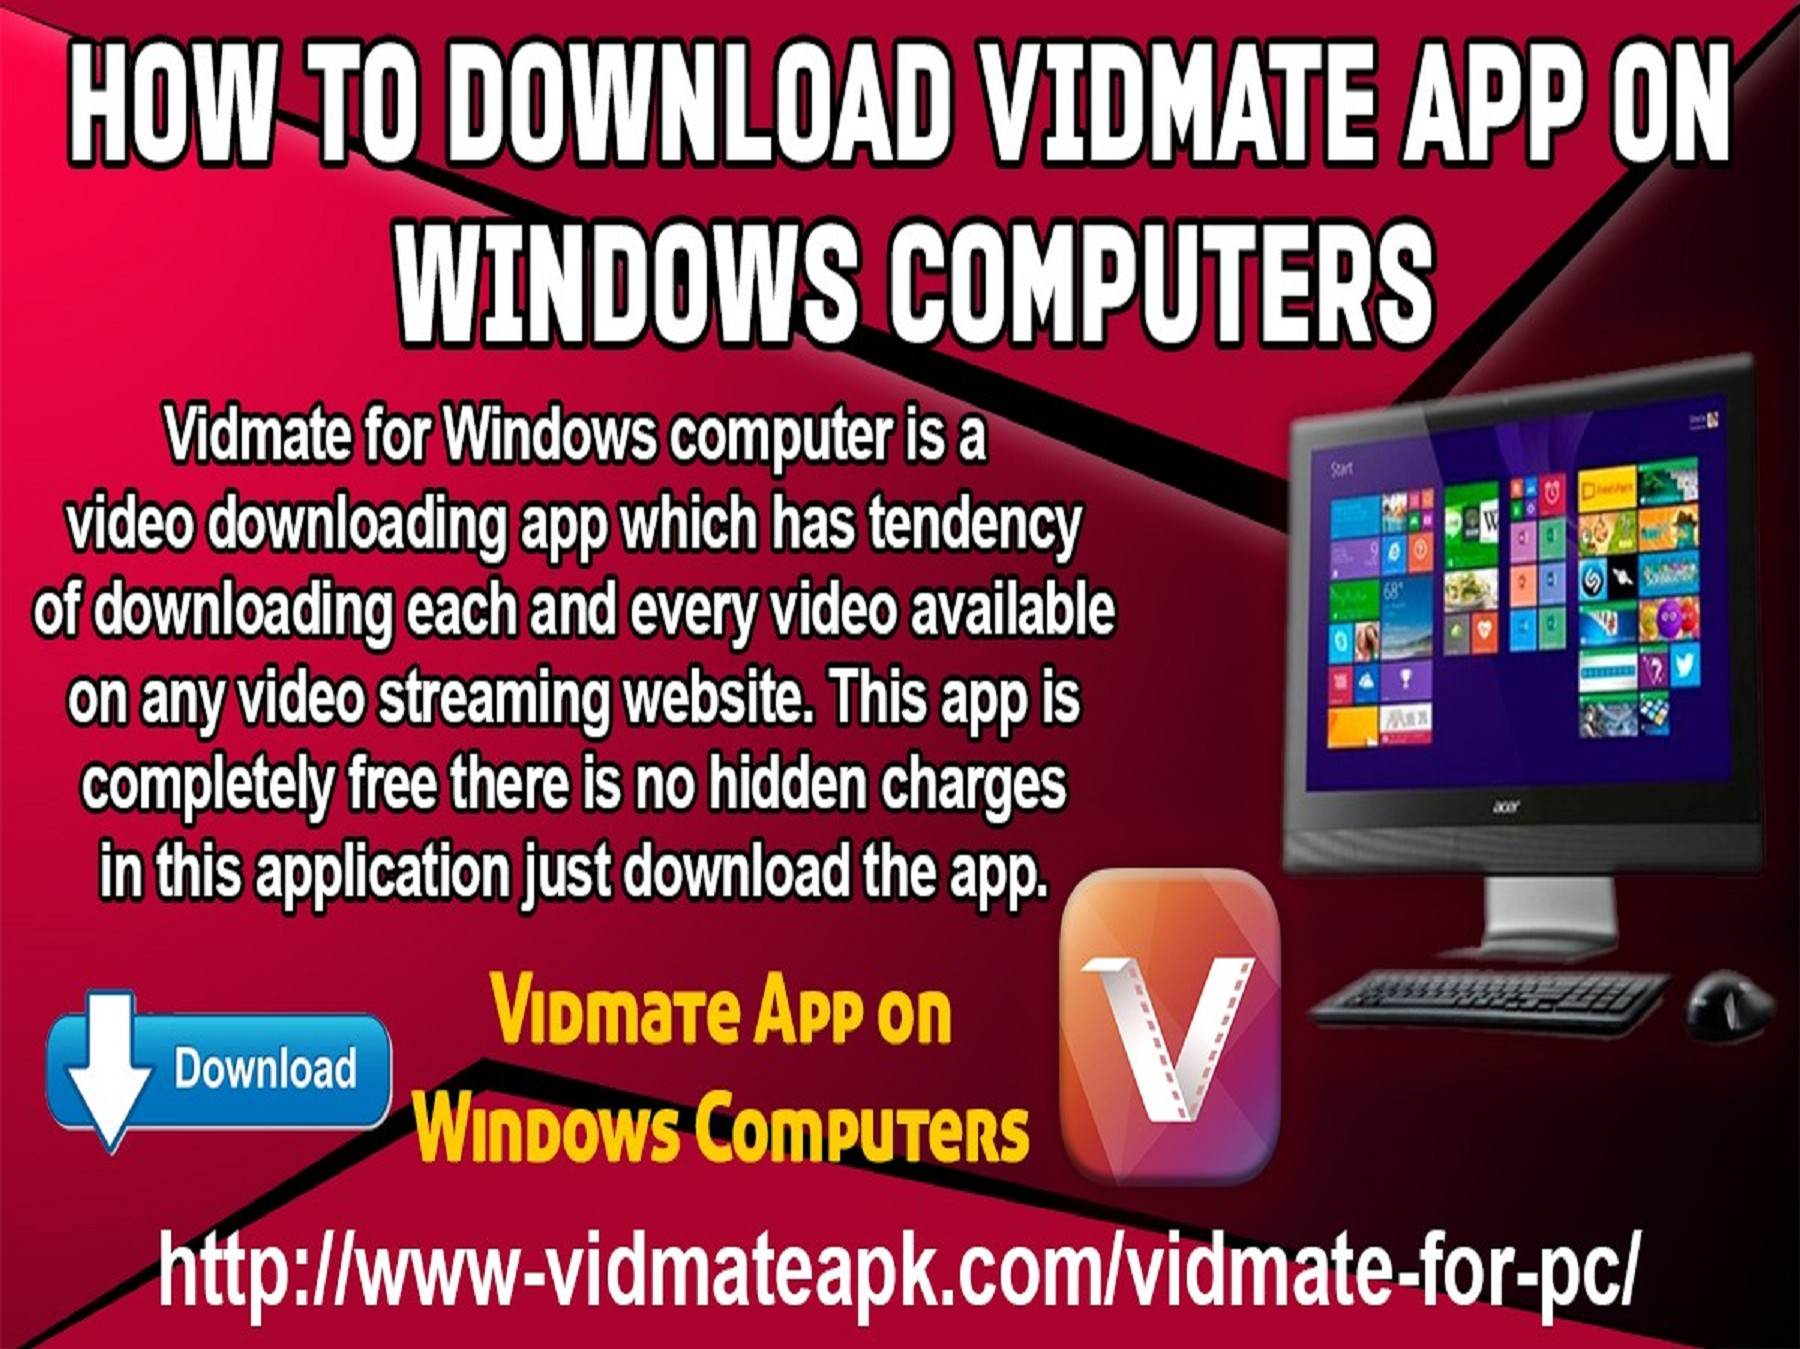 How To Download Vidmate App on Windows Computers